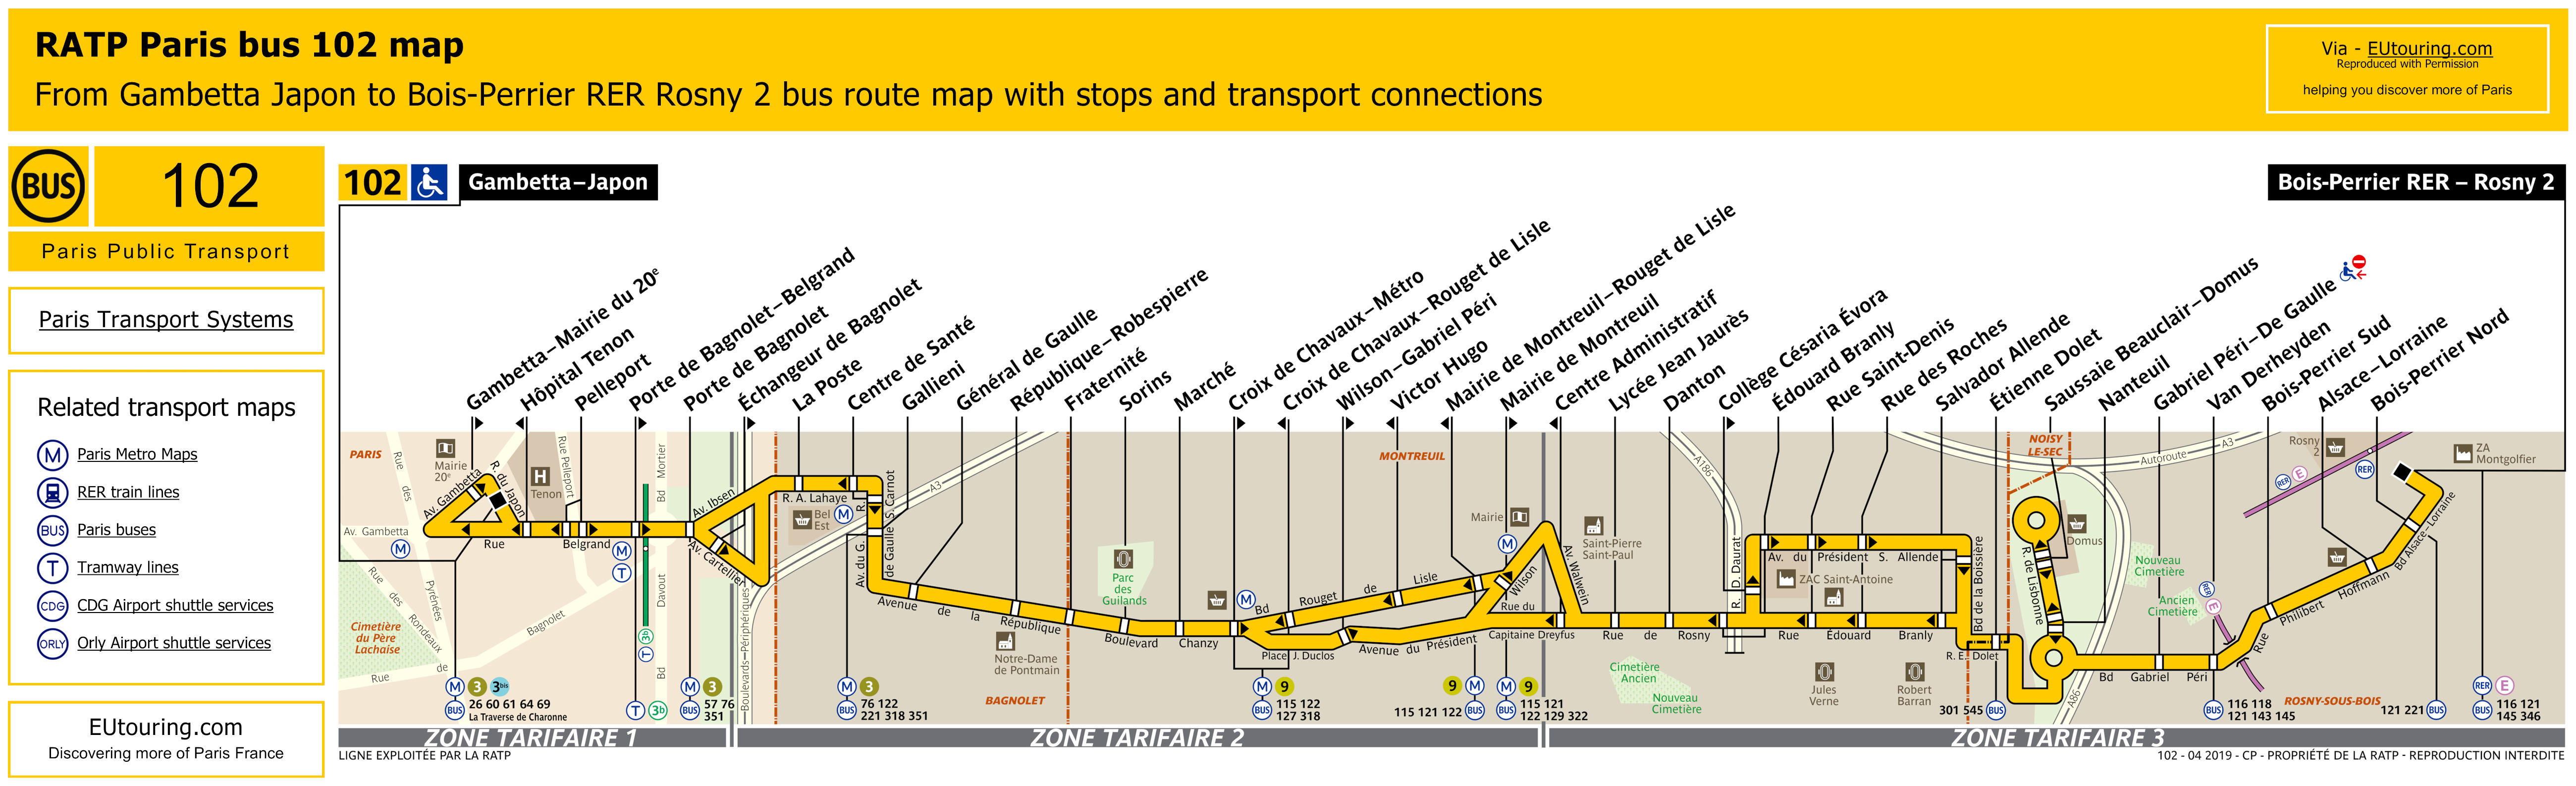 RATP route maps, timetables for Paris bus lines 100 to 109 - Update 2019